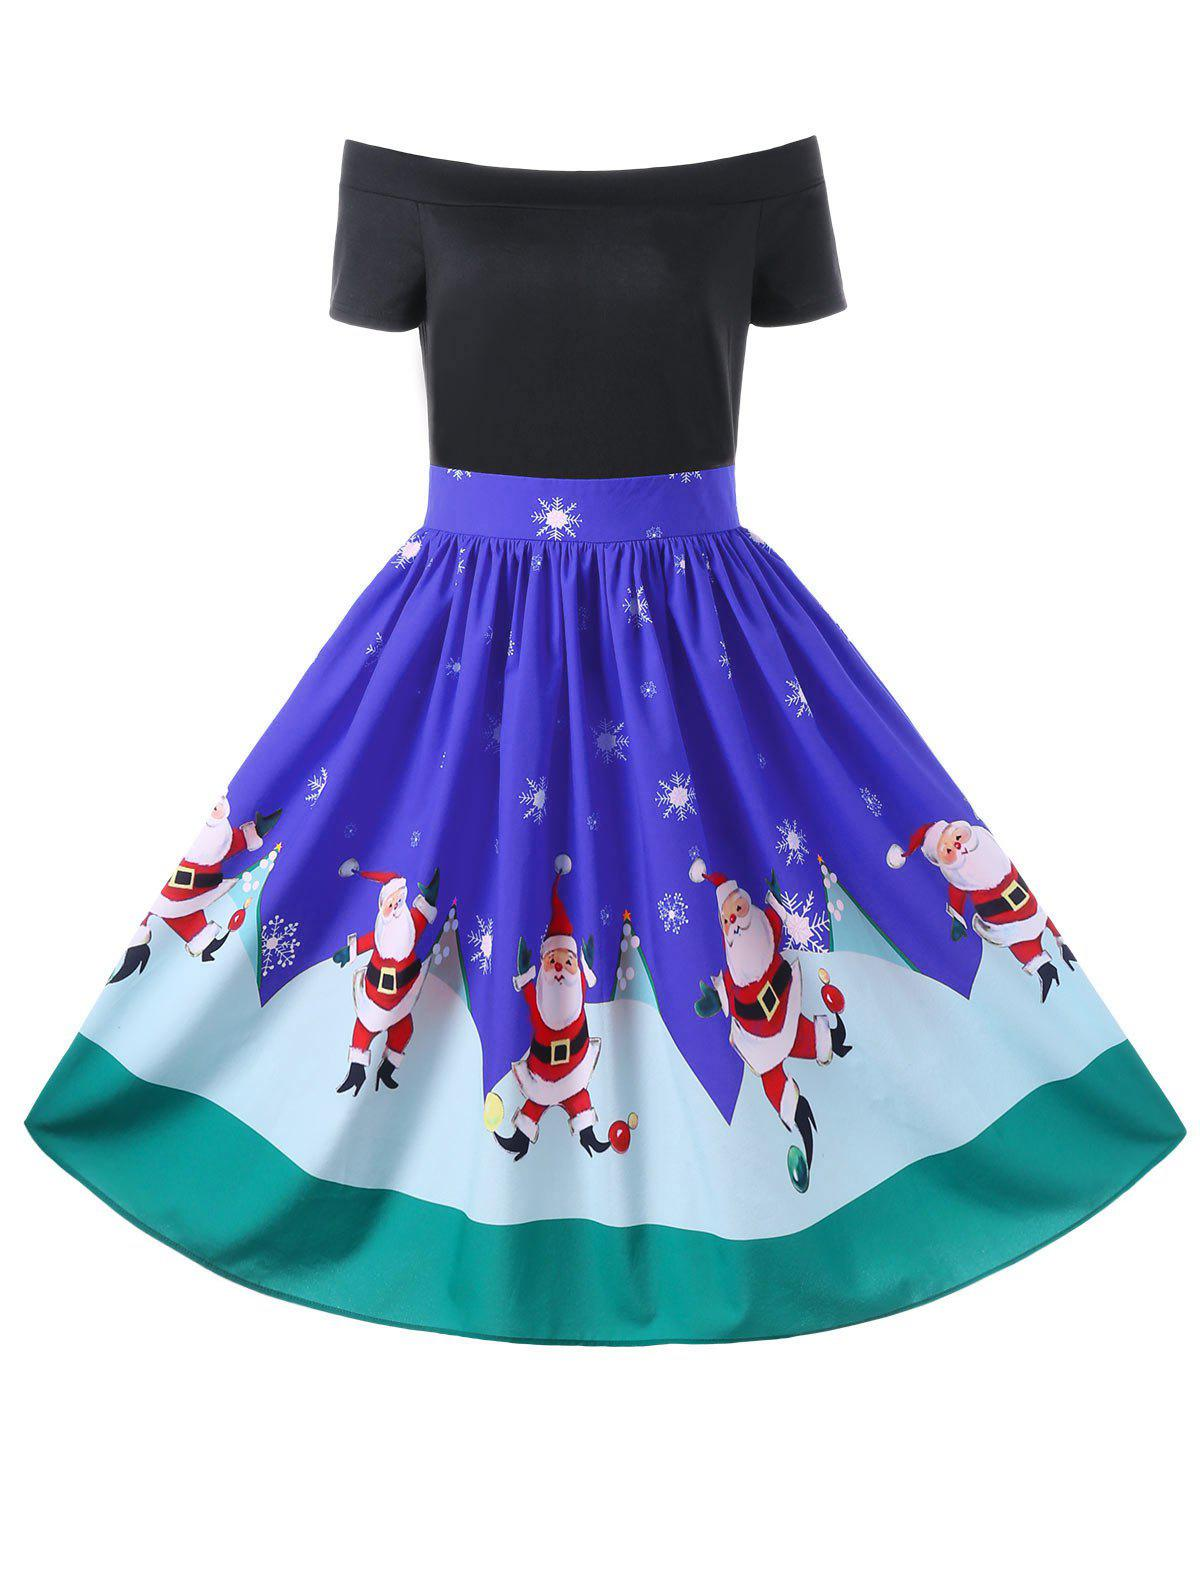 Christmas Off The Shoulder 50s Swing DressWOMEN<br><br>Size: M; Color: BLUE; Style: Vintage; Material: Polyester; Silhouette: A-Line; Dresses Length: Knee-Length; Neckline: Off The Shoulder; Sleeve Length: Short Sleeves; Pattern Type: Character; With Belt: No; Season: Fall,Spring,Summer; Weight: 0.3300kg; Package Contents: 1 x Dress;